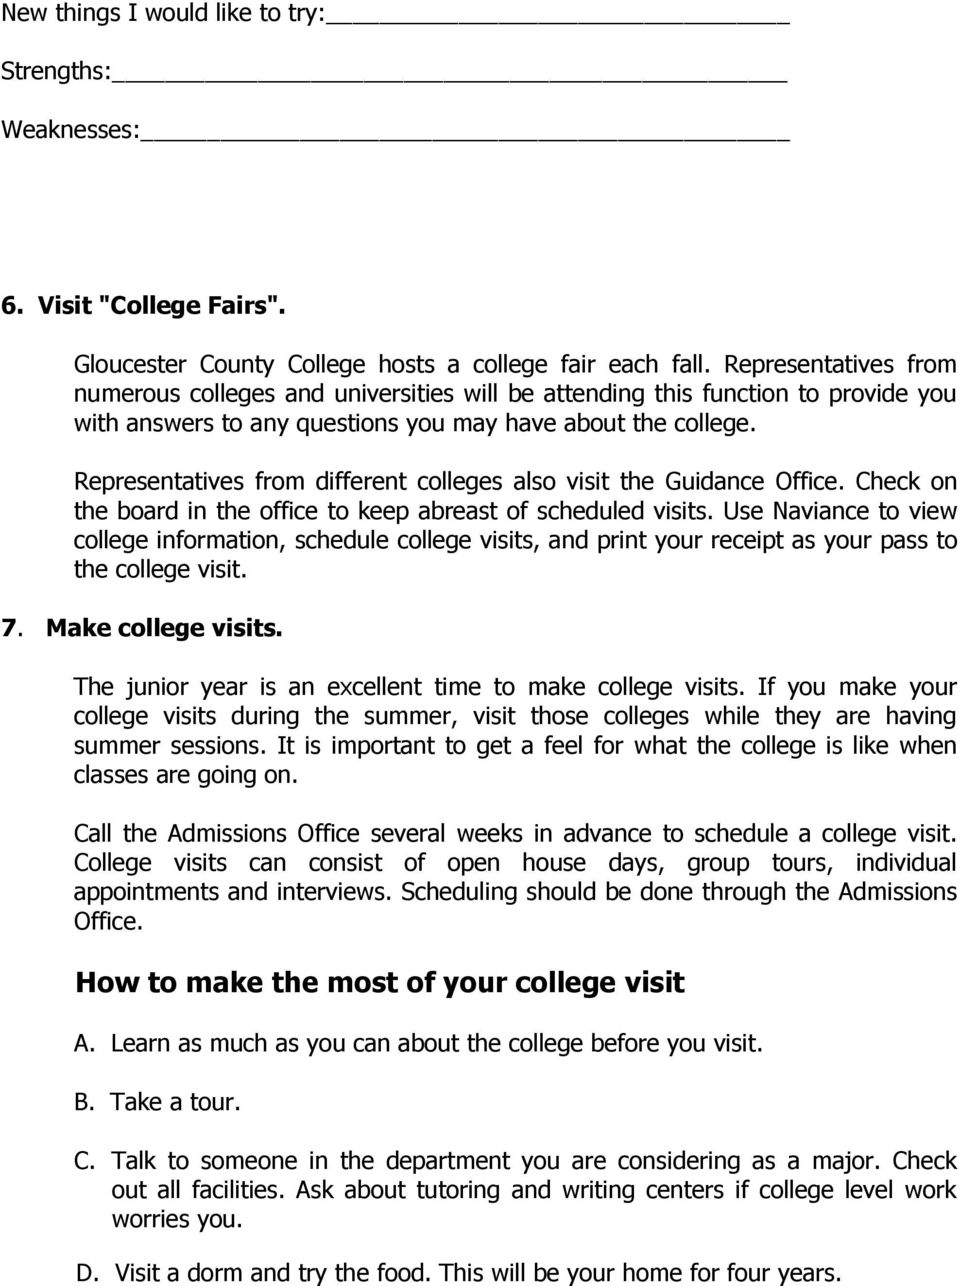 How To Calculate Gpa Representatives From Different Colleges Also Visit The  Guidance Office Check On The